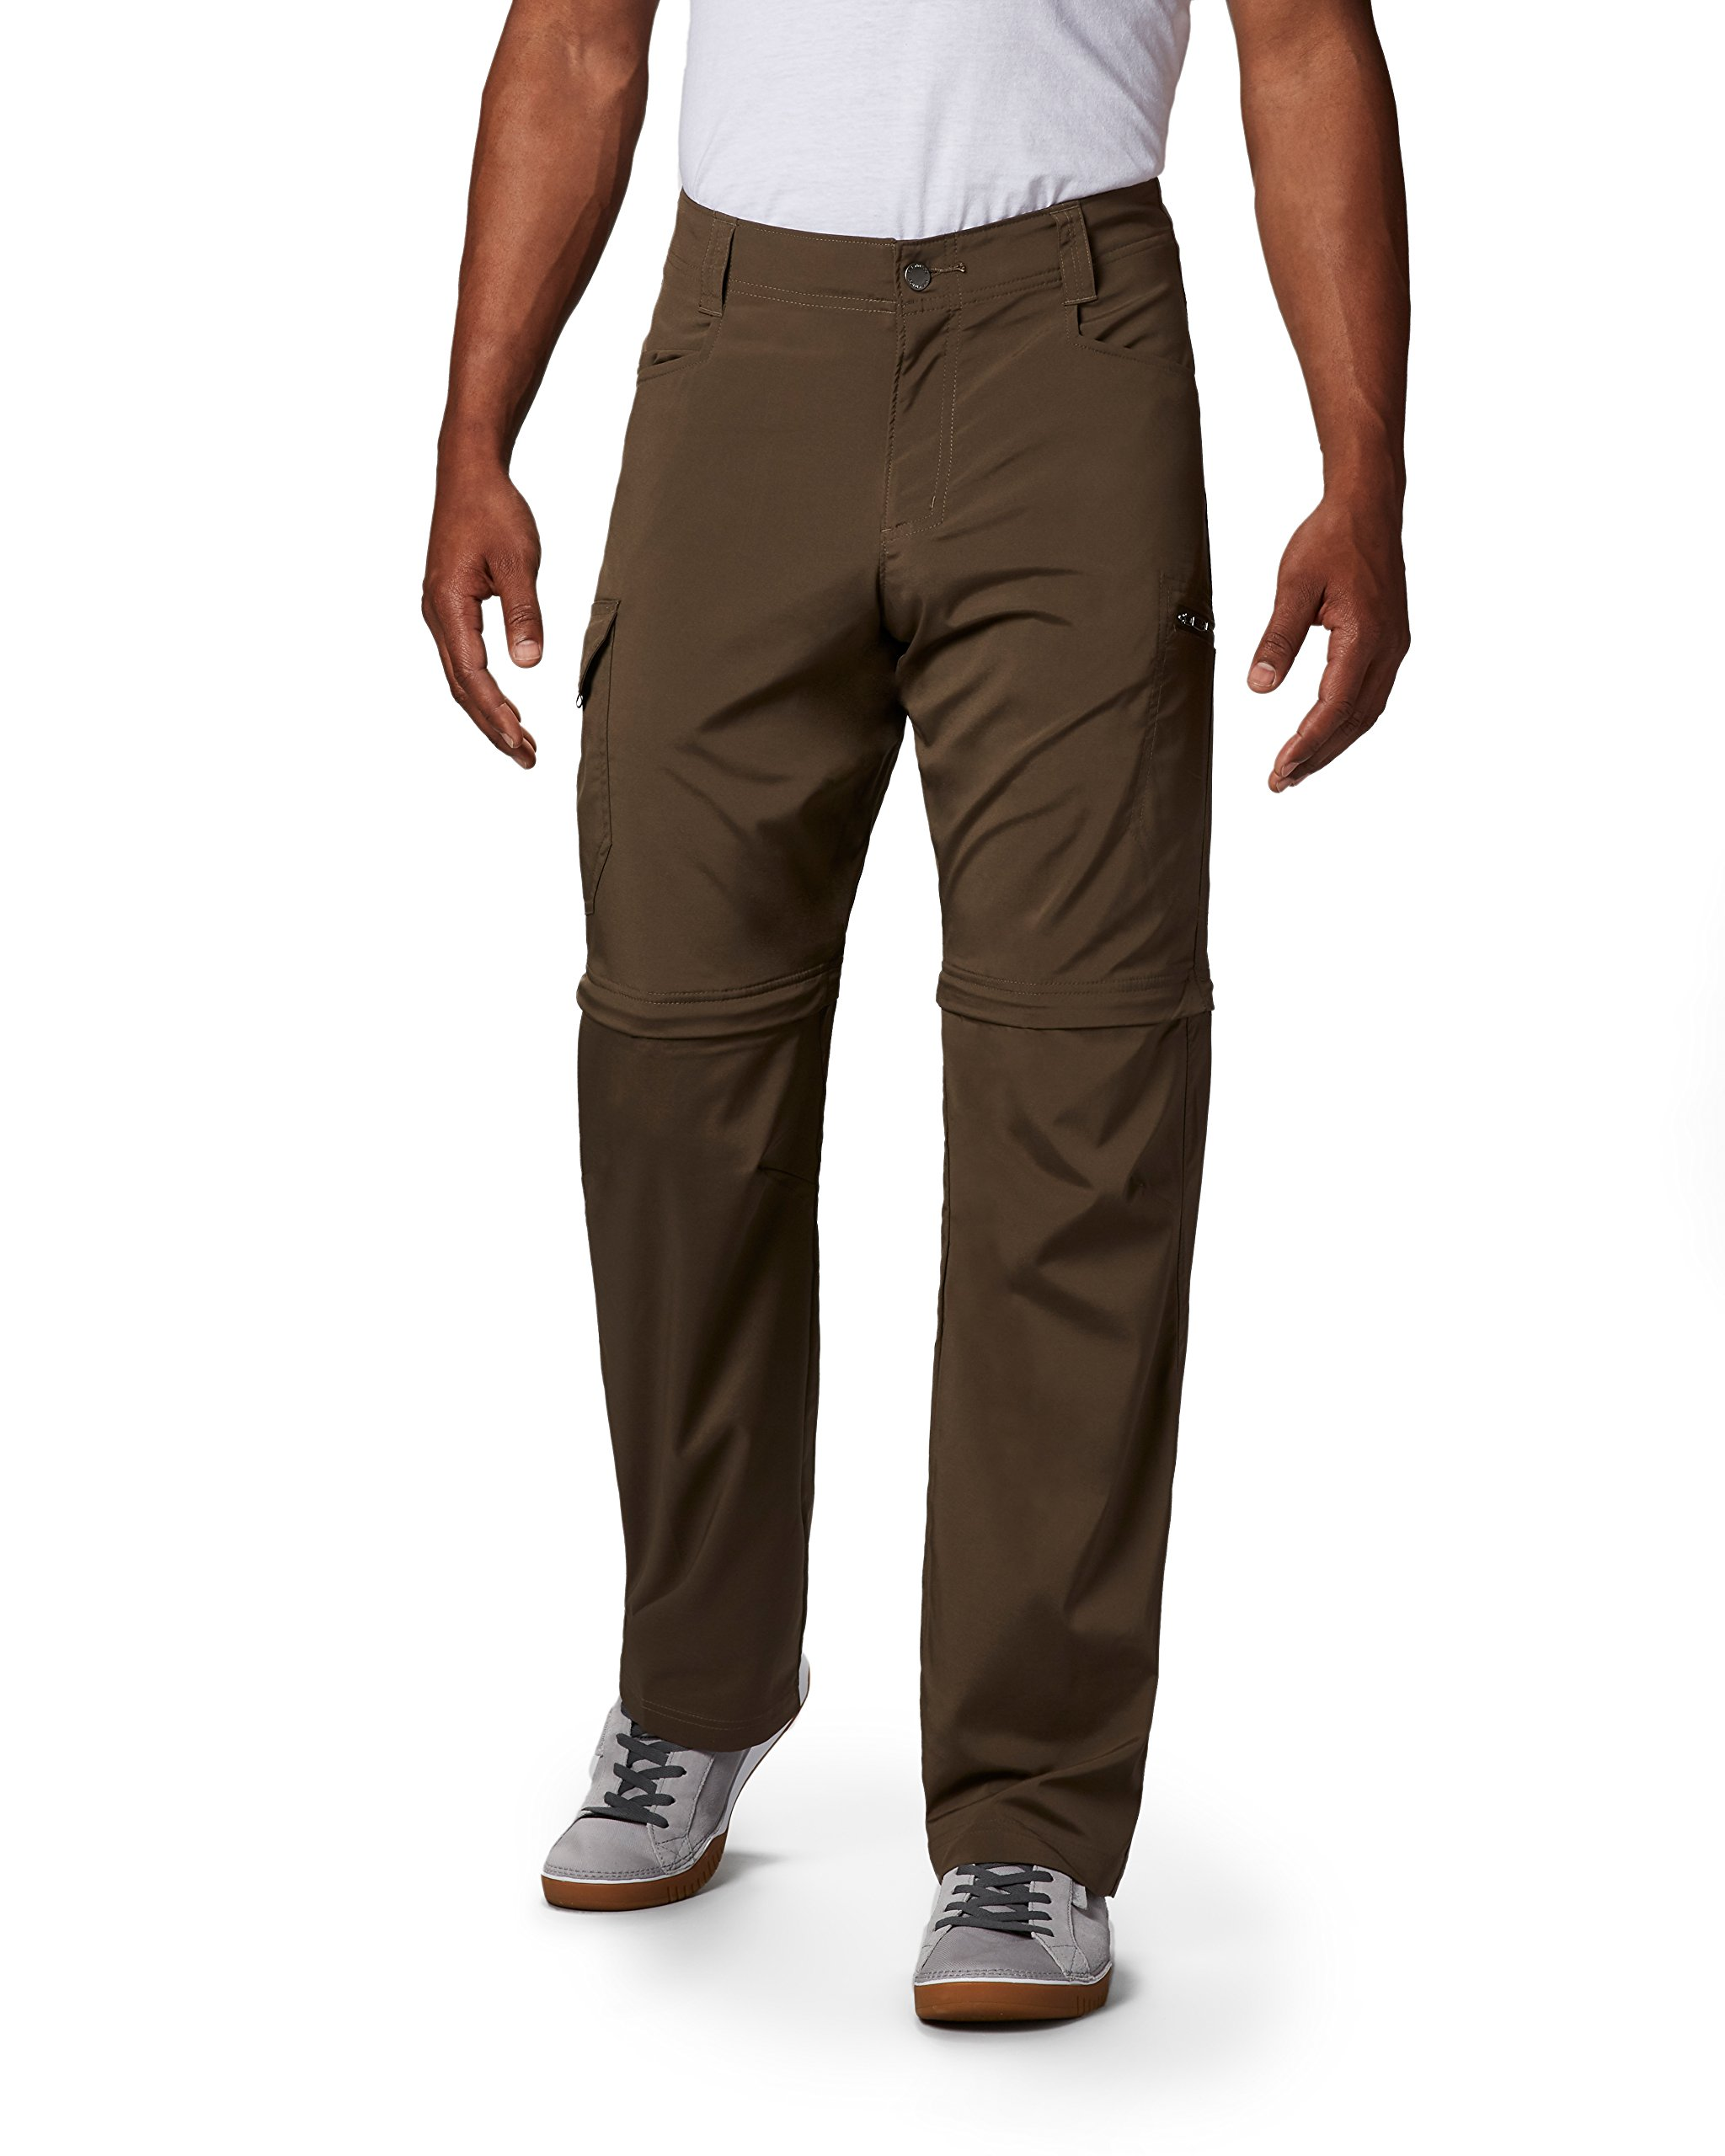 Columbia Men's Silver Ridge Stretch Convertible Pants, 30'' x 30'', Major